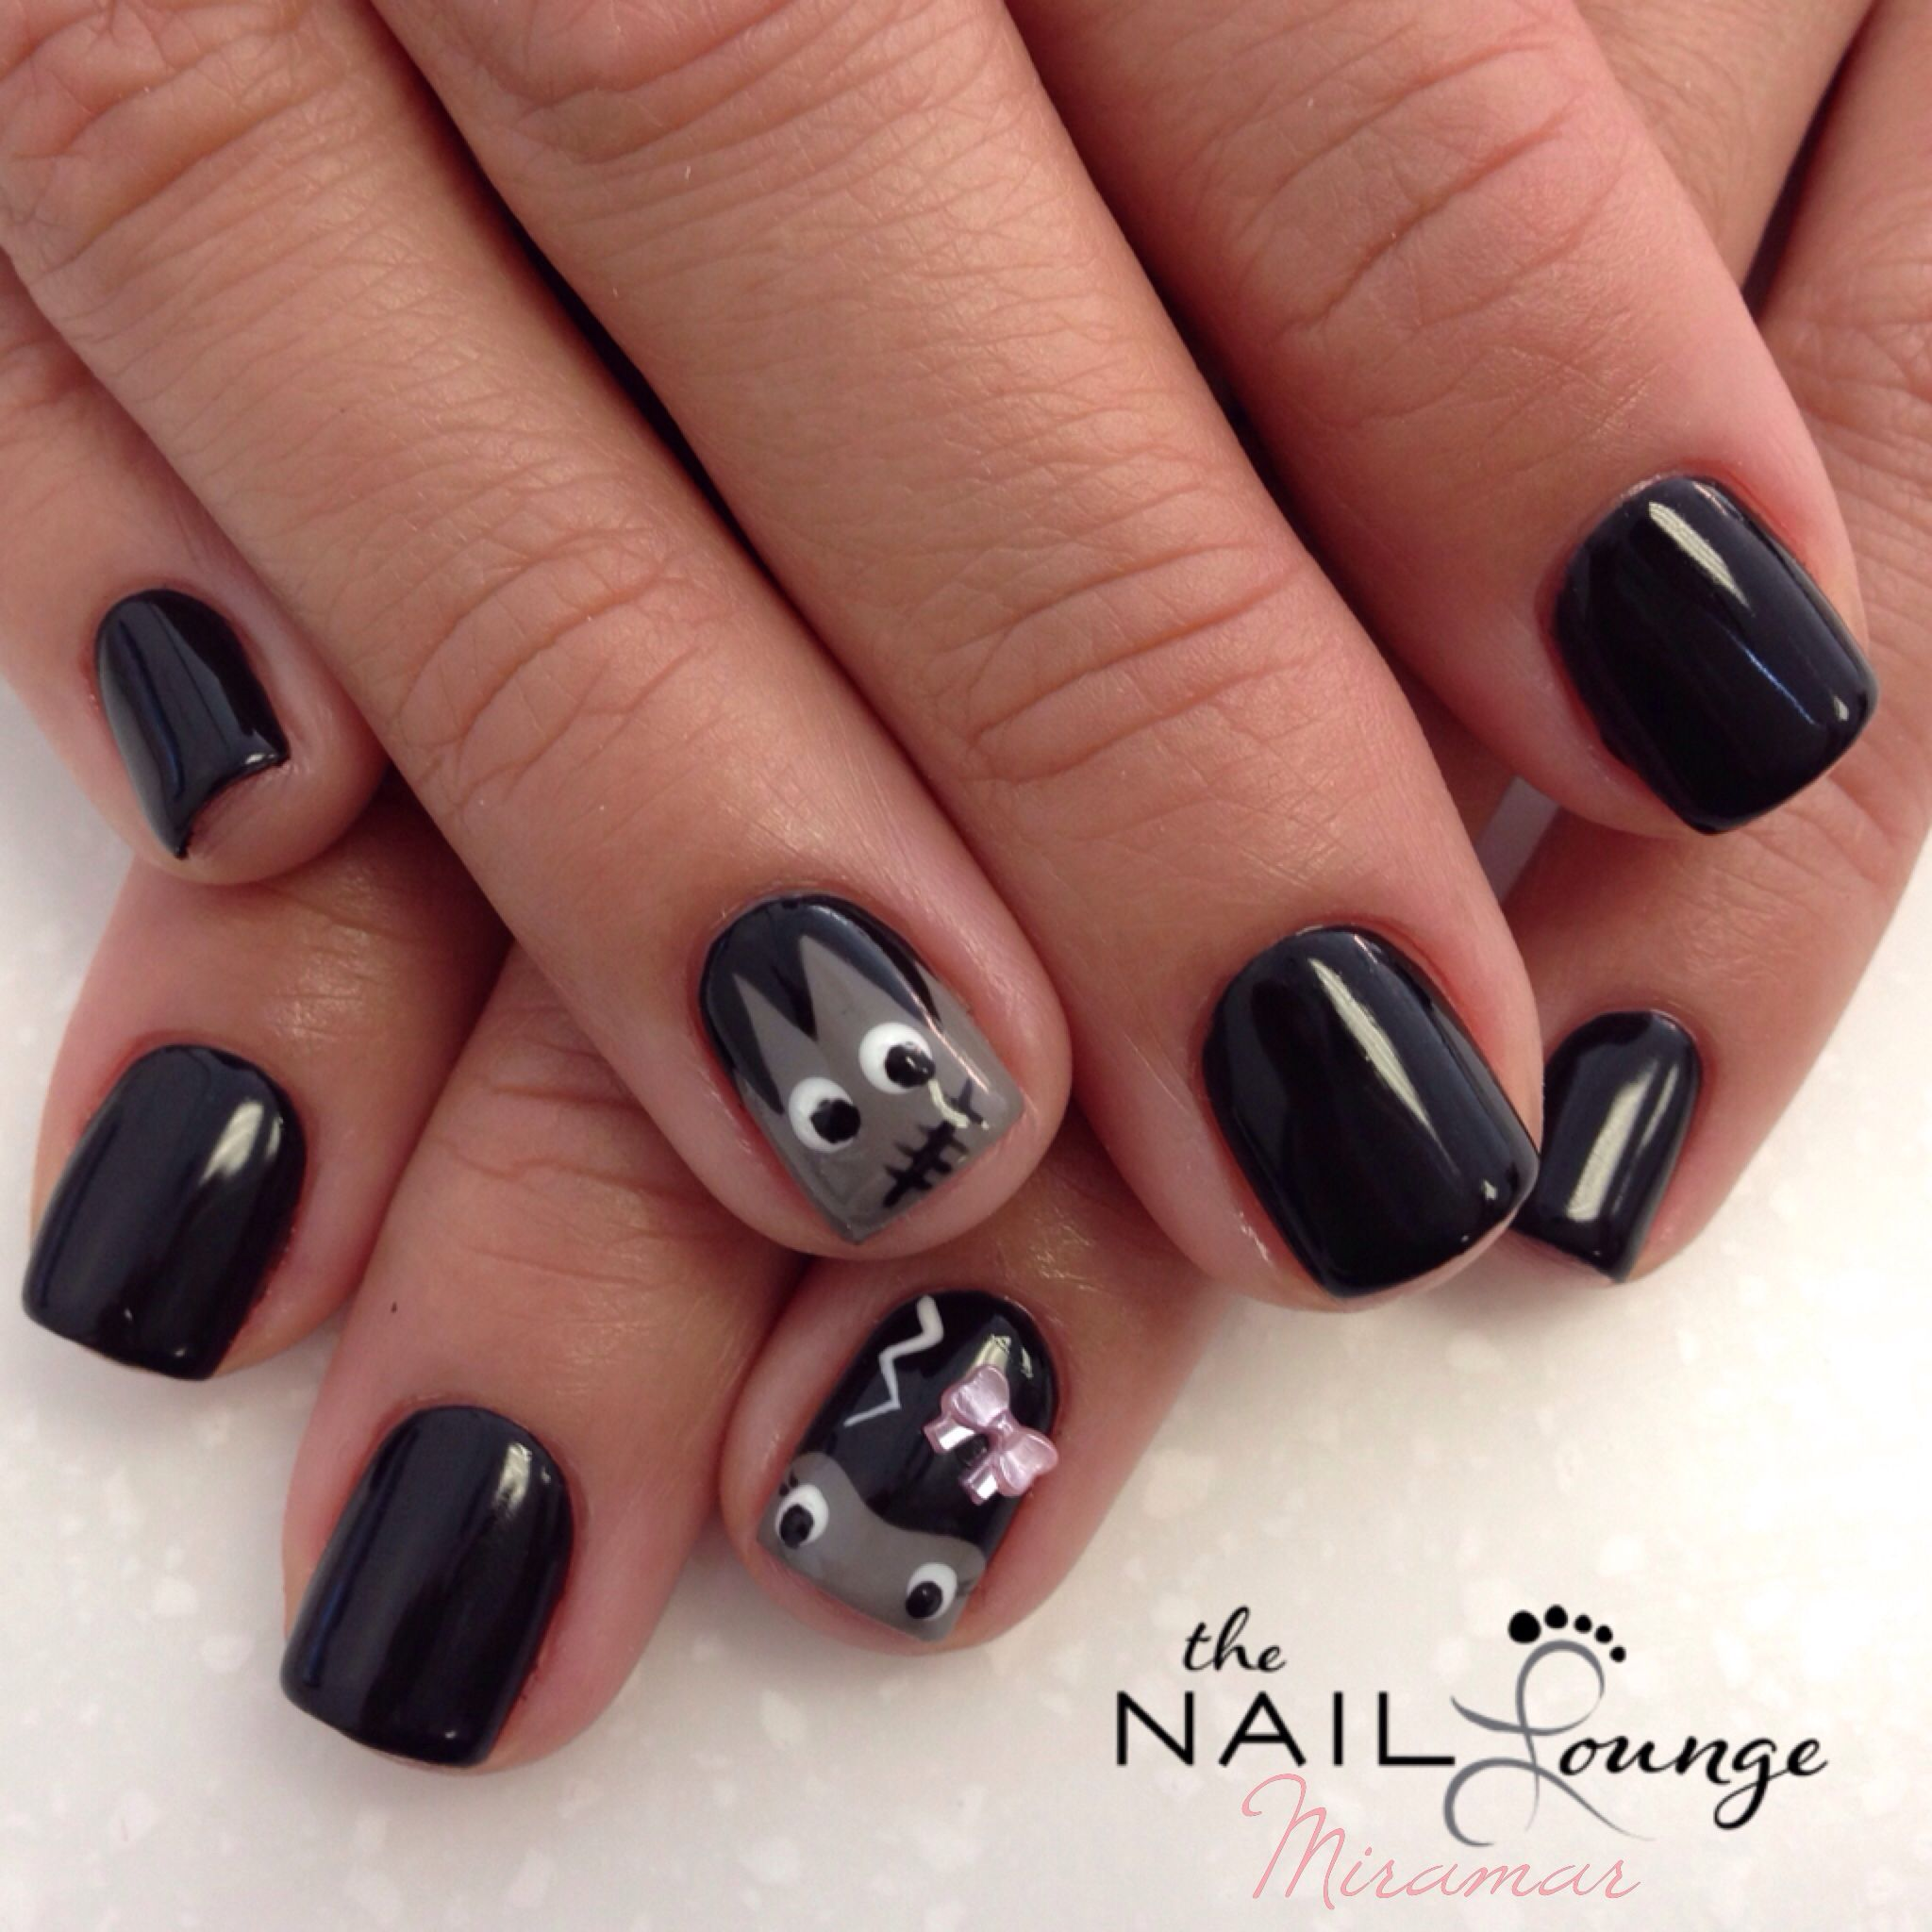 Frankenstein halloween gel nail art design | Gel nail art ...